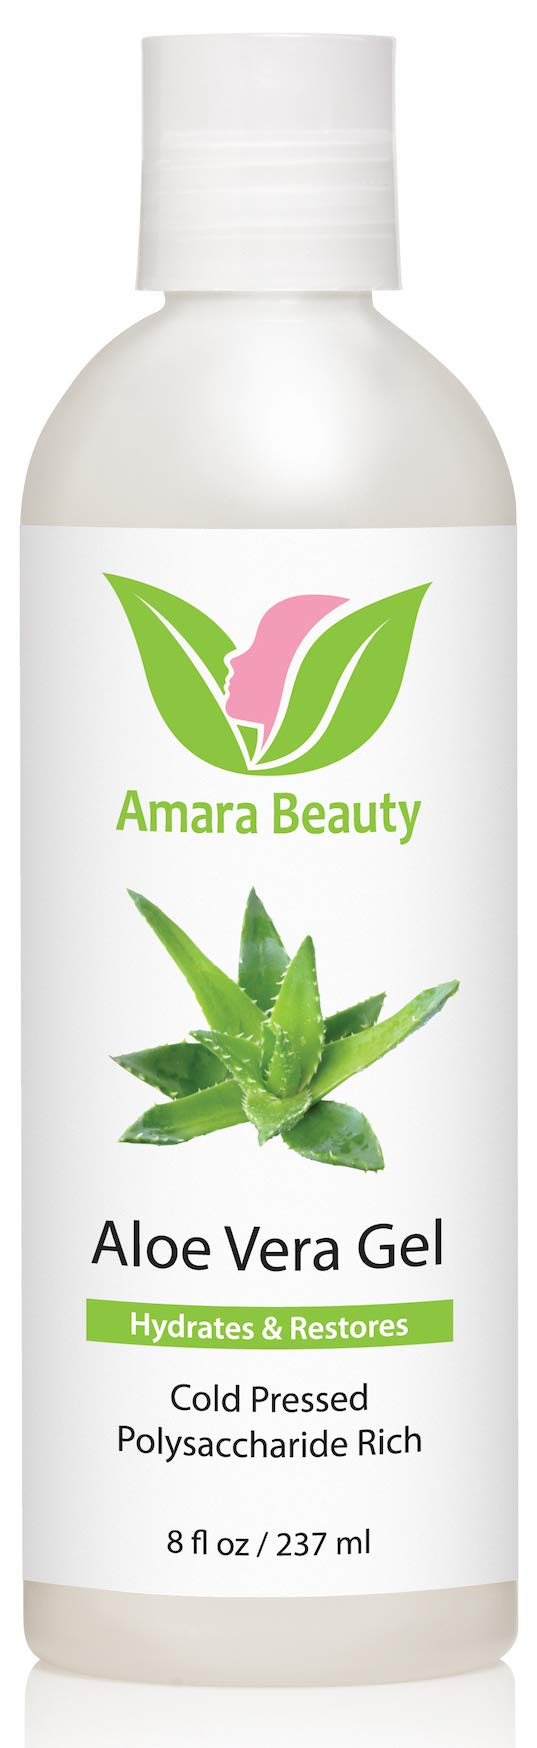 Aloe Vera Gel from Organic Cold Pressed Aloe for Face, Body, and Hair, 8 fl. oz.